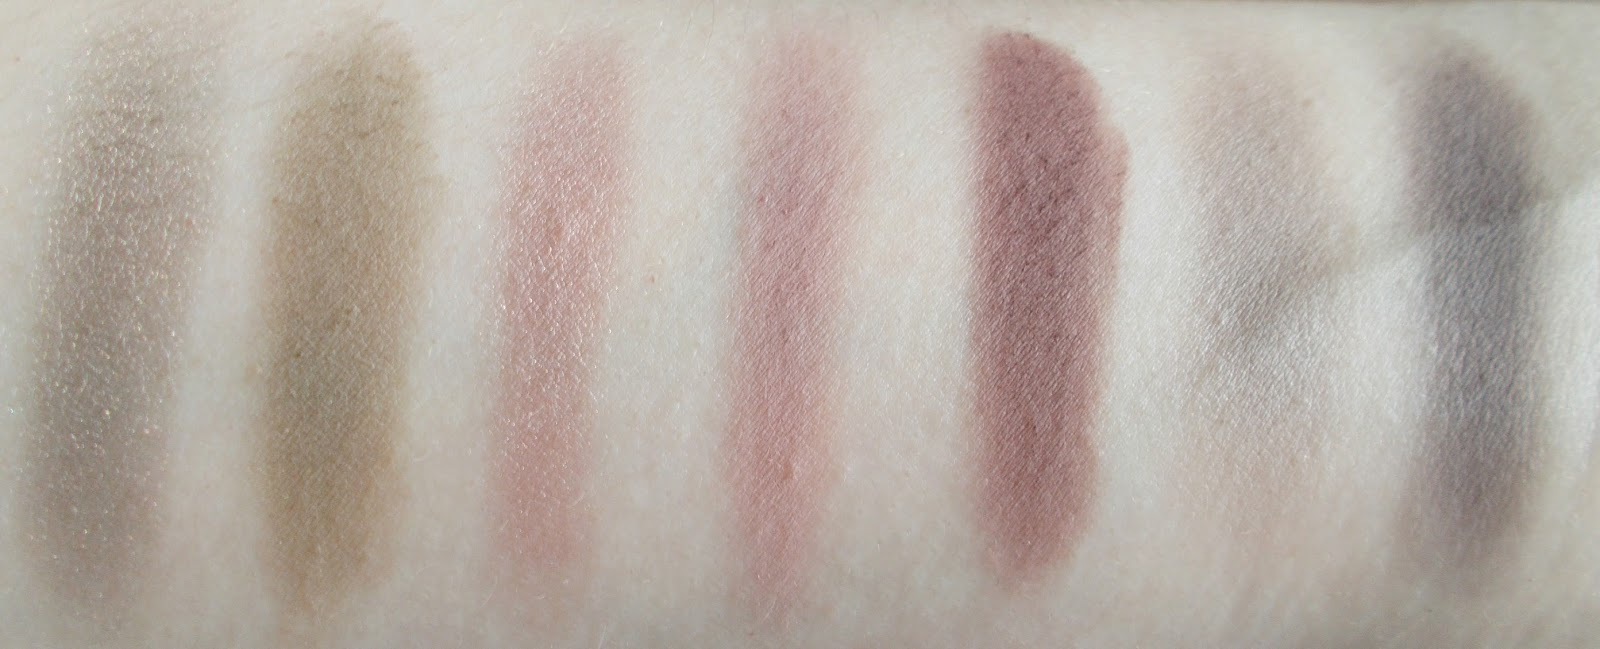 row 4 makeup geek eyeshadow swatches moondust high tea twilight unexpected vintage bedrock concrete jungle